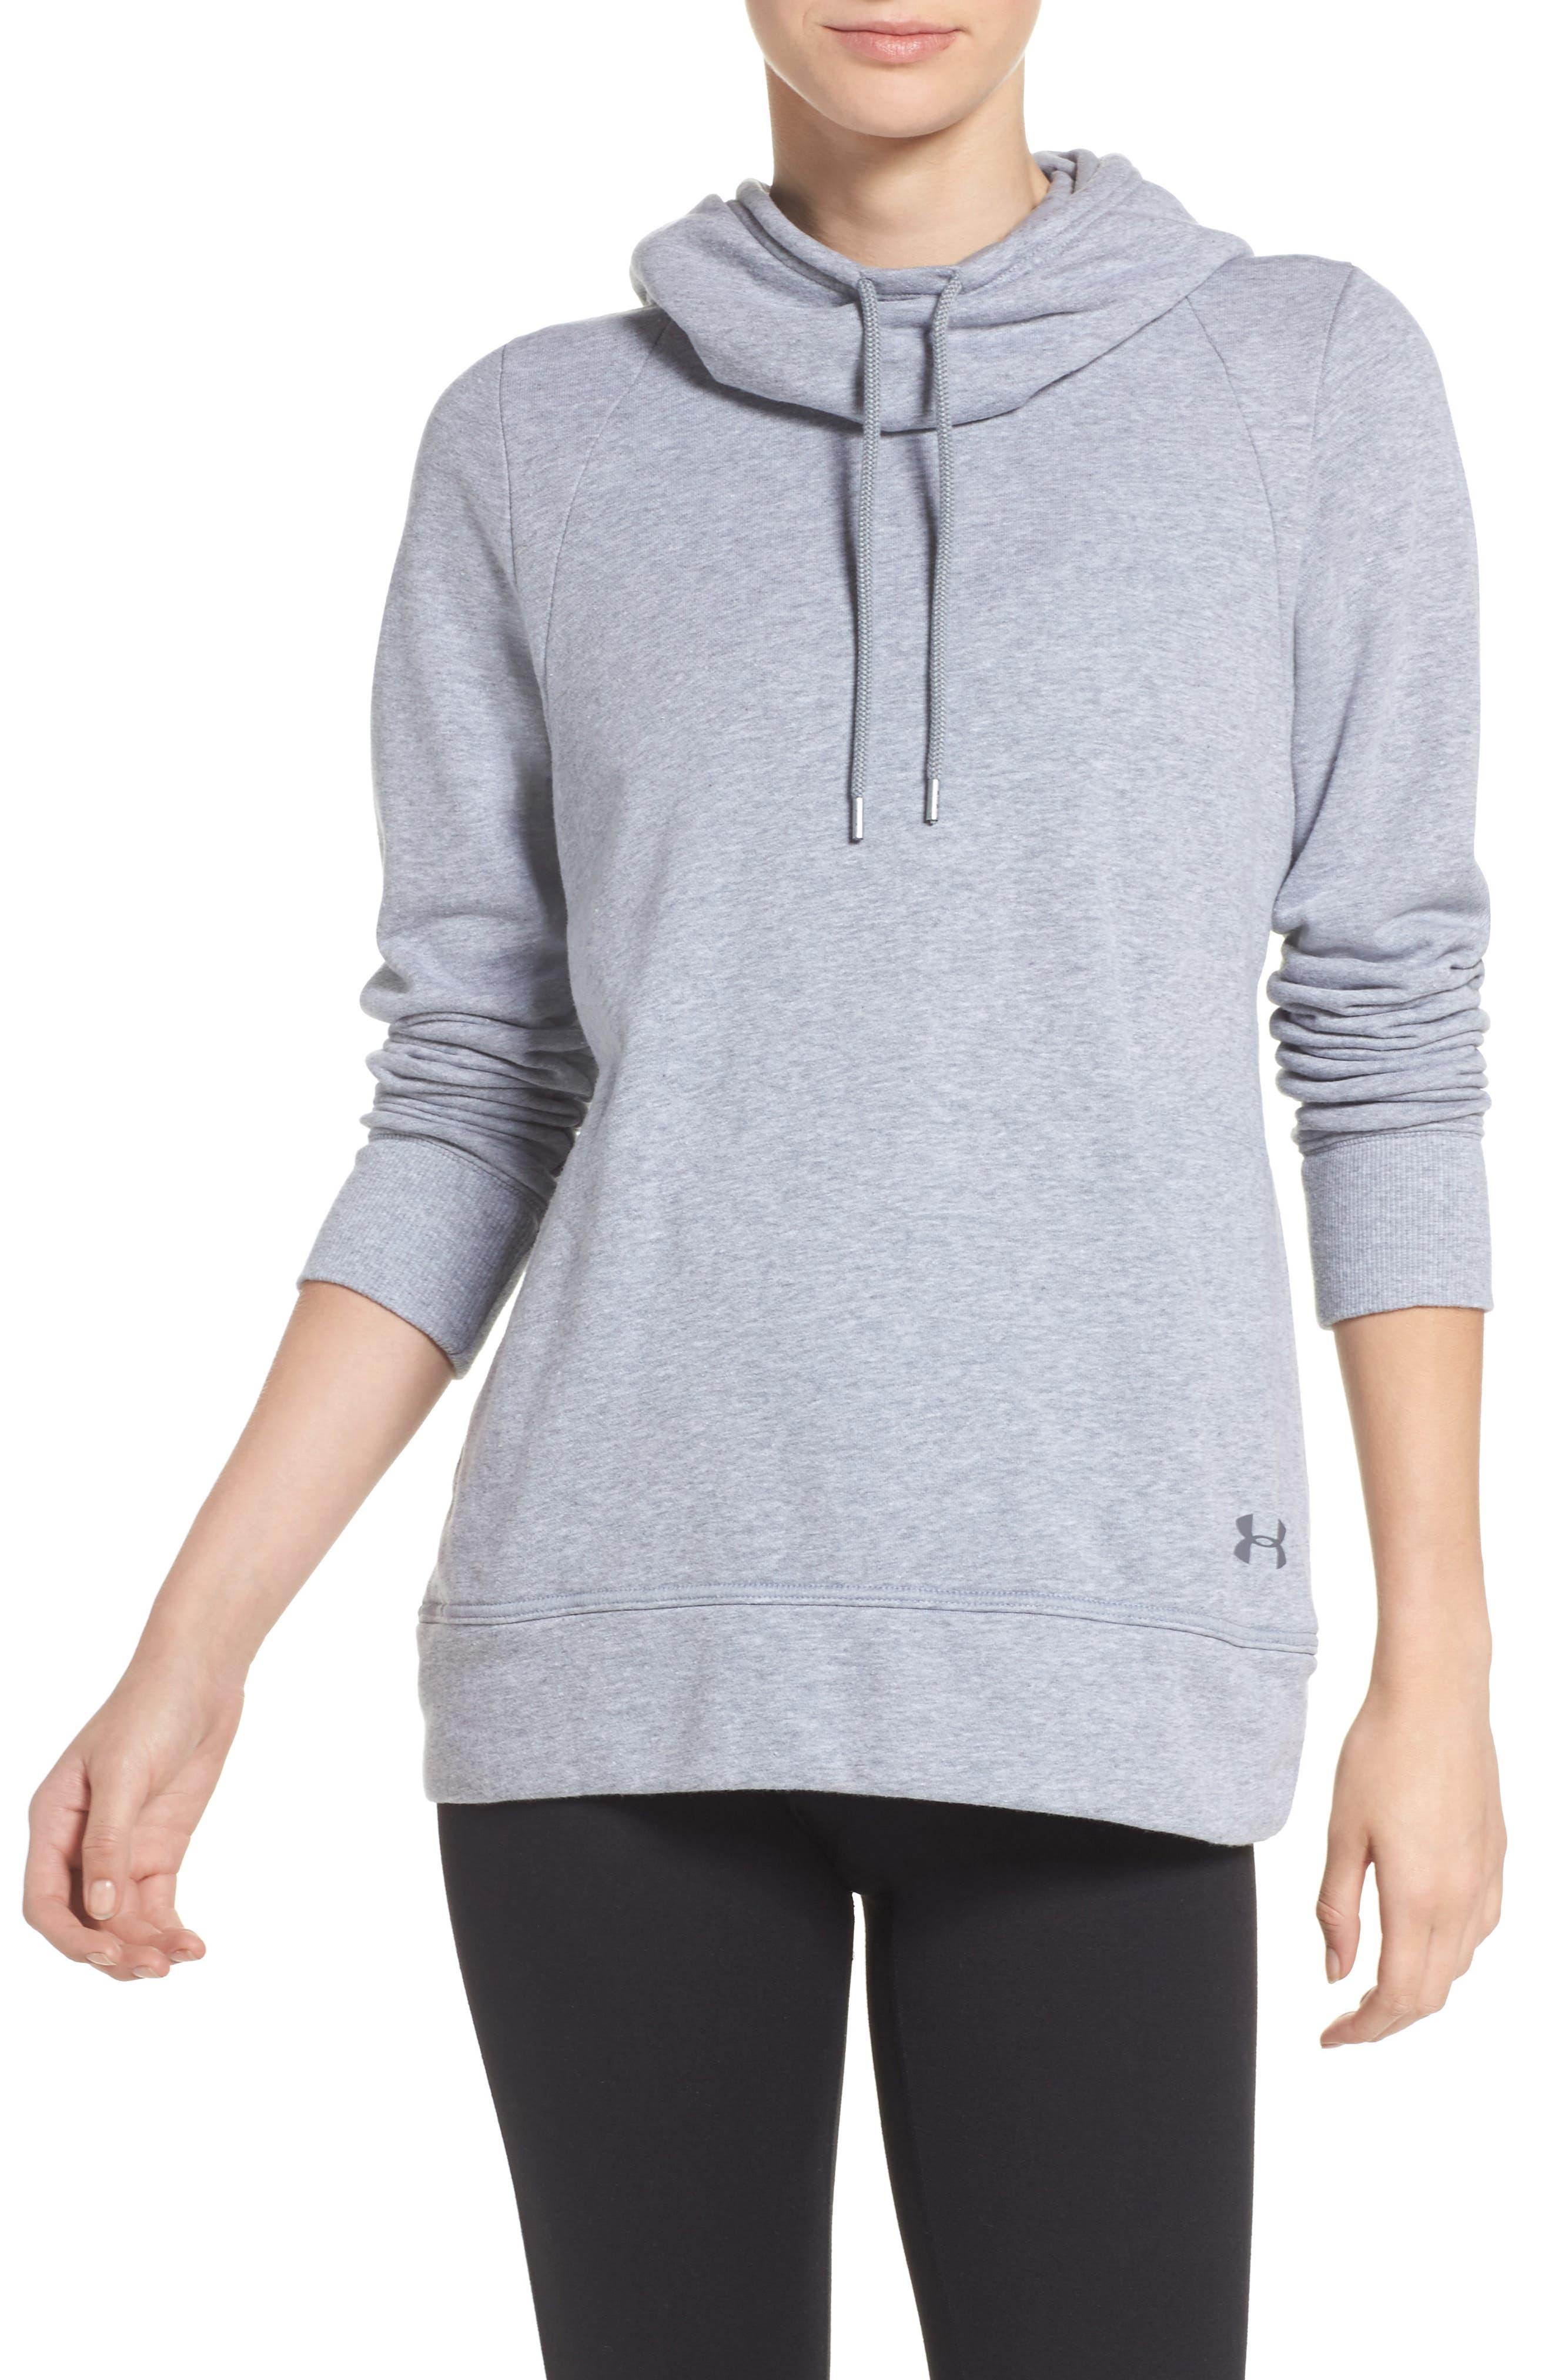 Main Image - Under Armour Cutout Back Hoodie